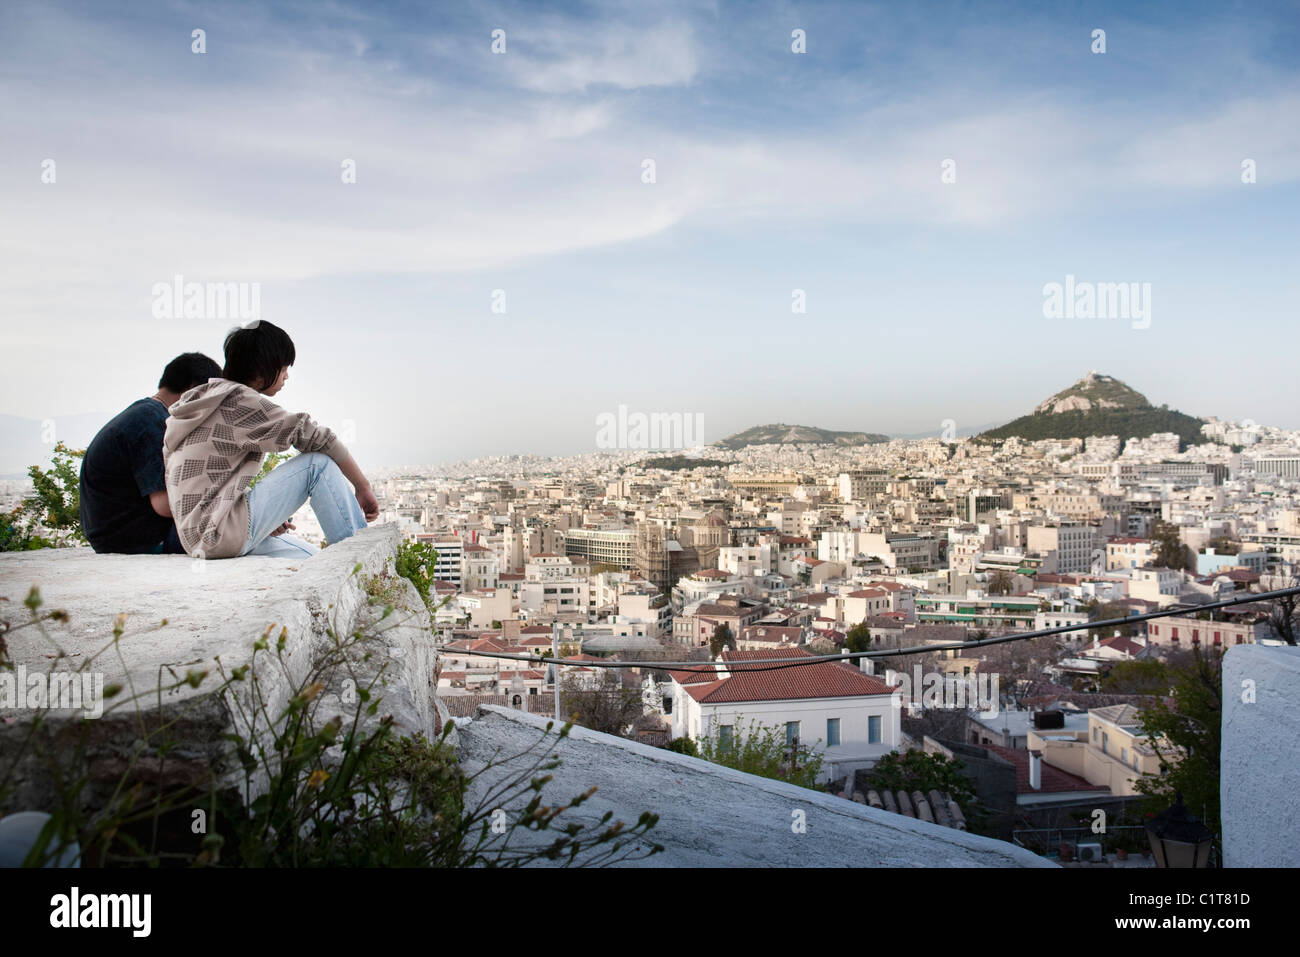 Tourists sitting on rock overlooking Athens, Greece and Mount Lycabettus - Stock Image